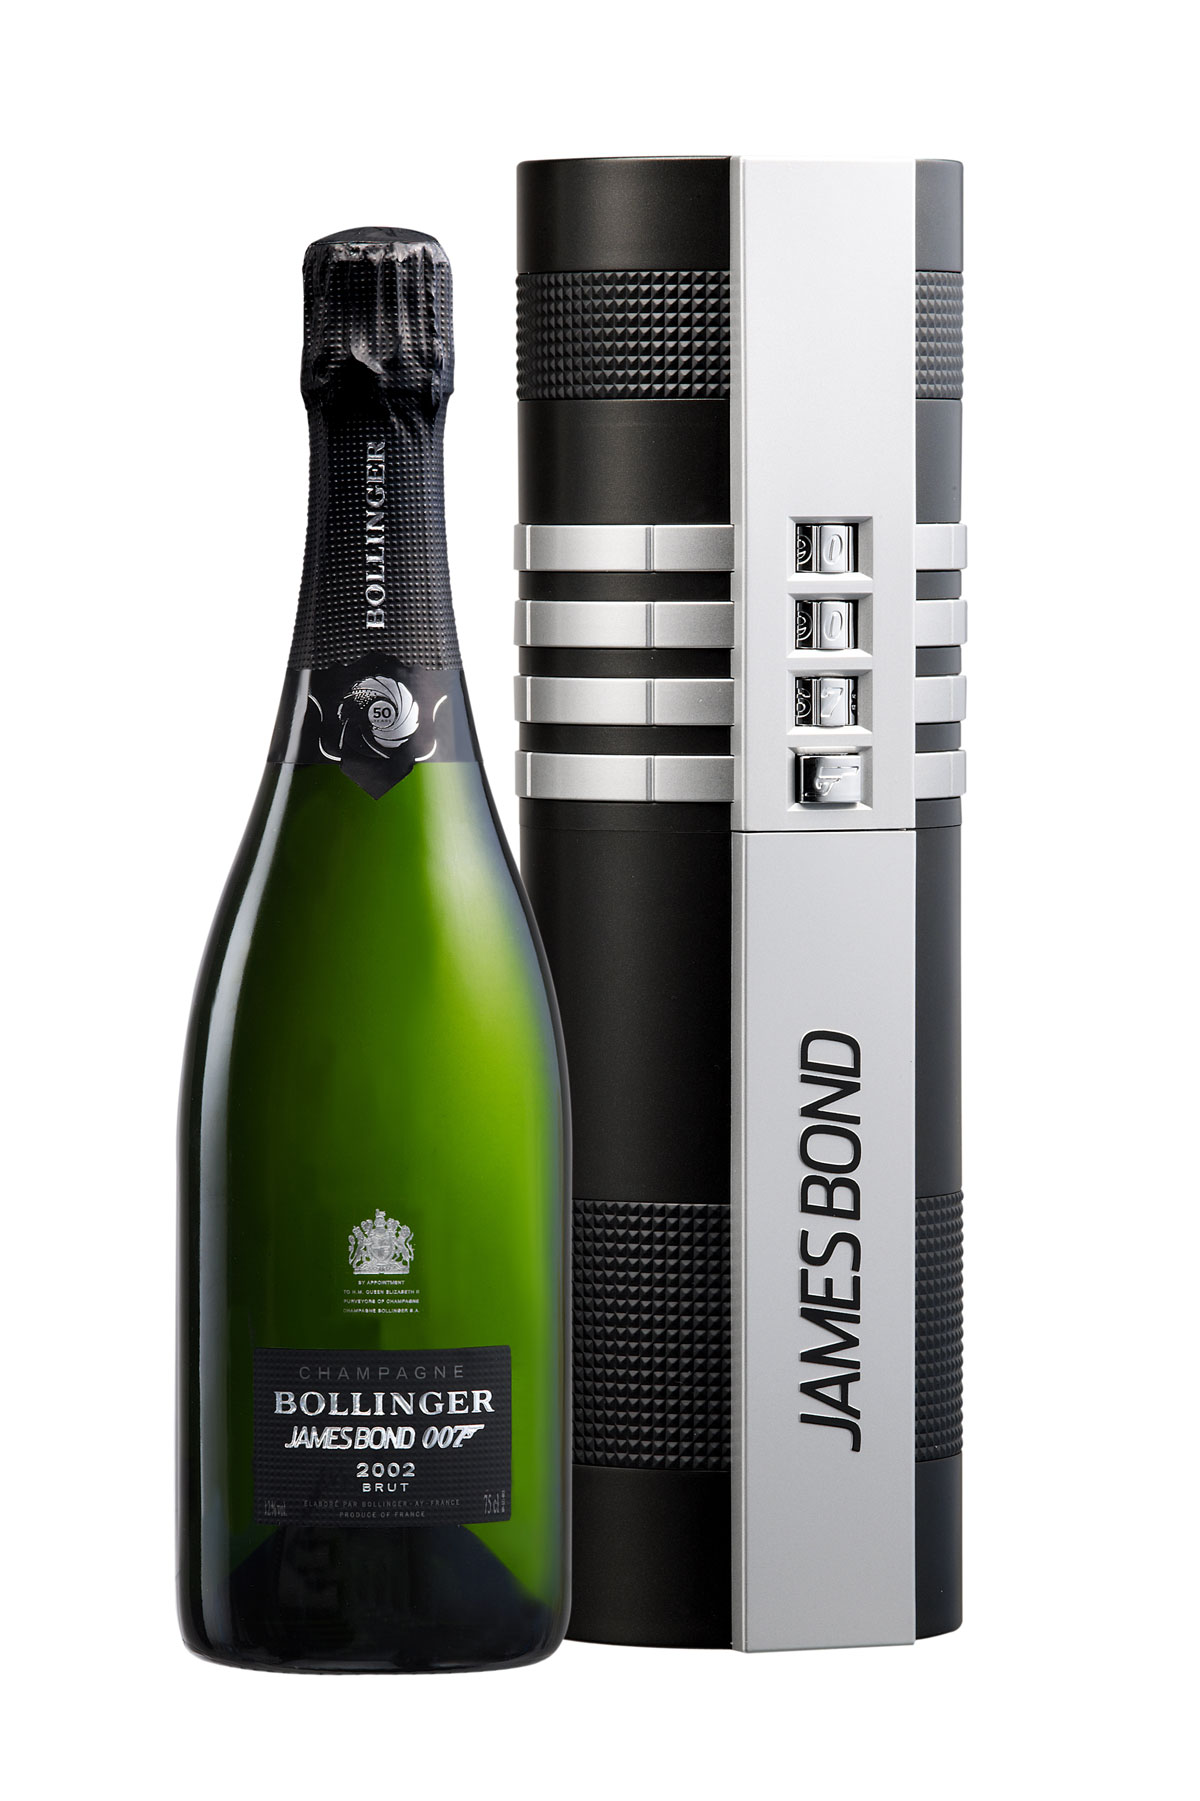 Special Champagne Bollinger 002 for 007 Gift Set – Limited Edition